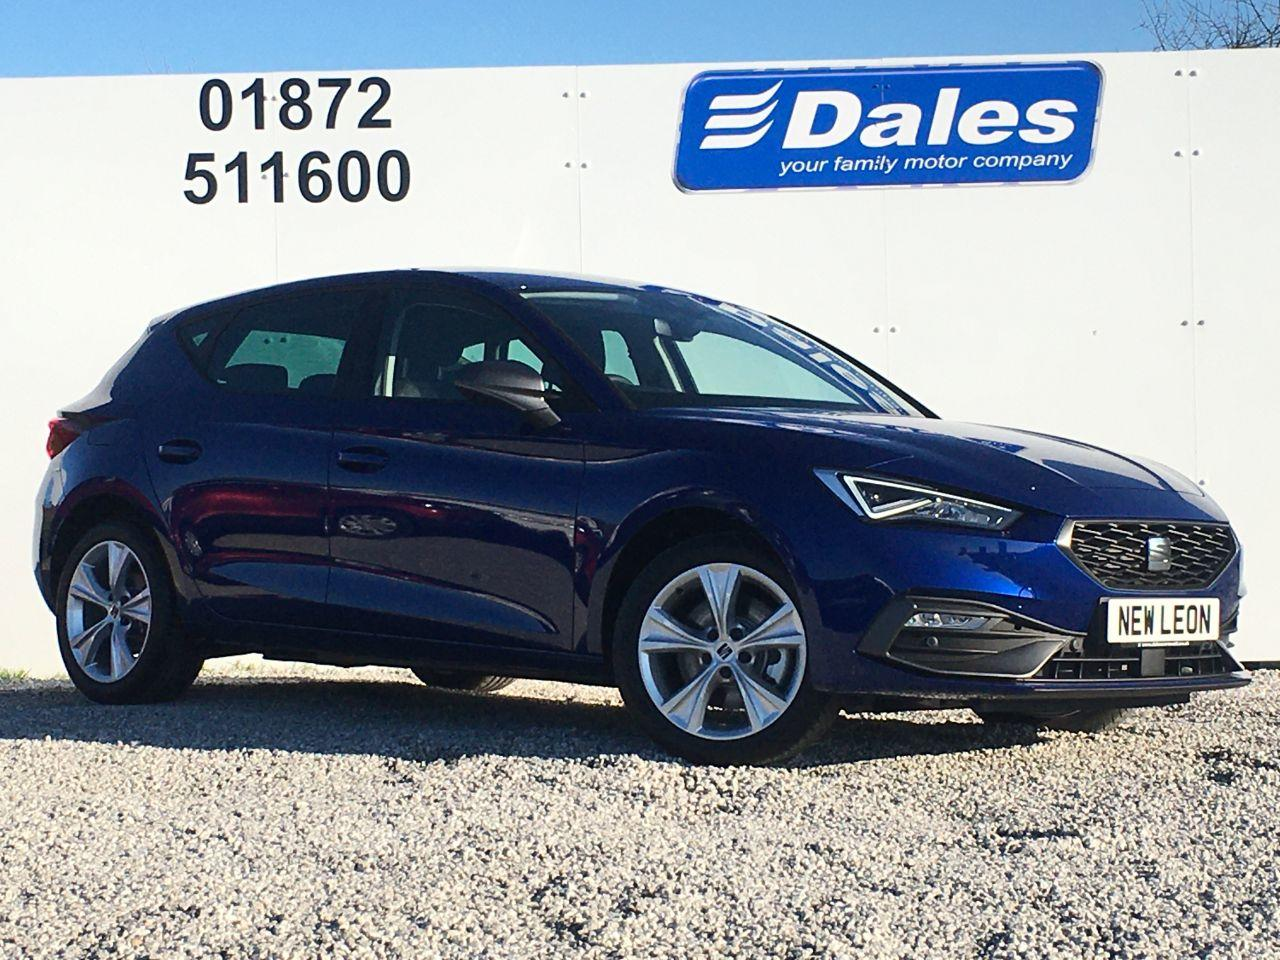 SEAT Leon FR PHEV 1.4 e-HYBRID DSG AUTO 204PS 6-SPEED Hatchback Petrol / Electric Hybrid Mystery Blue